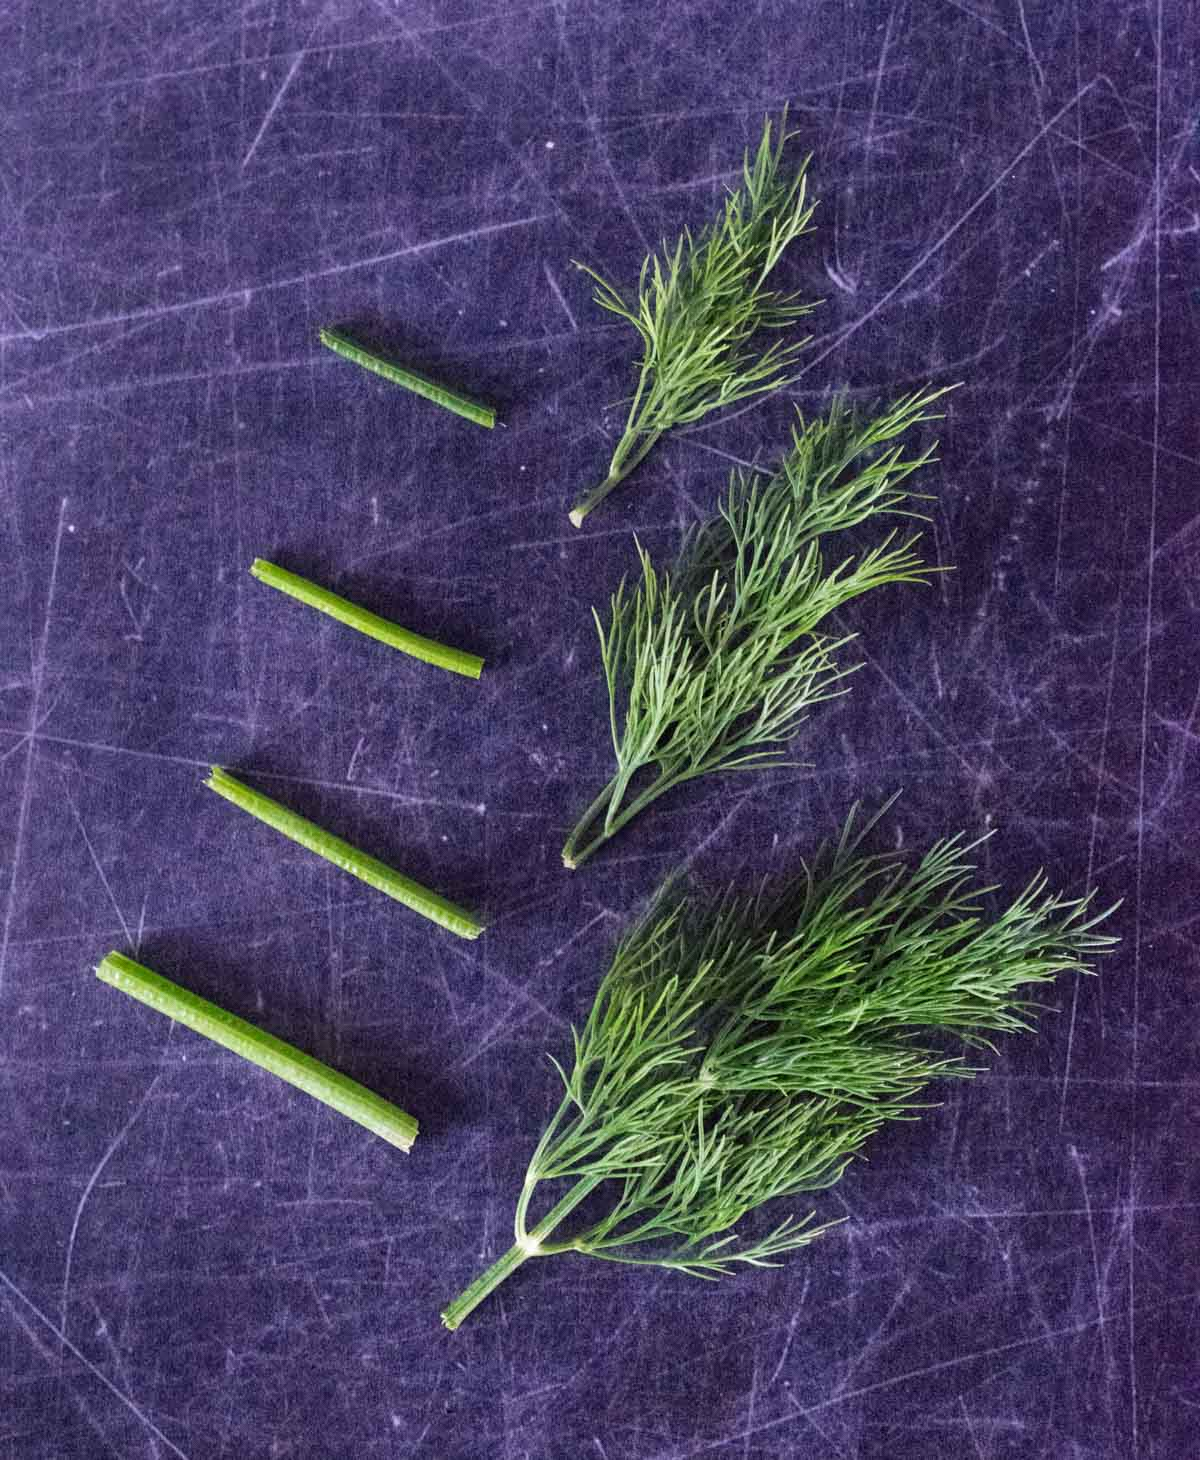 Chopped dill on black background.